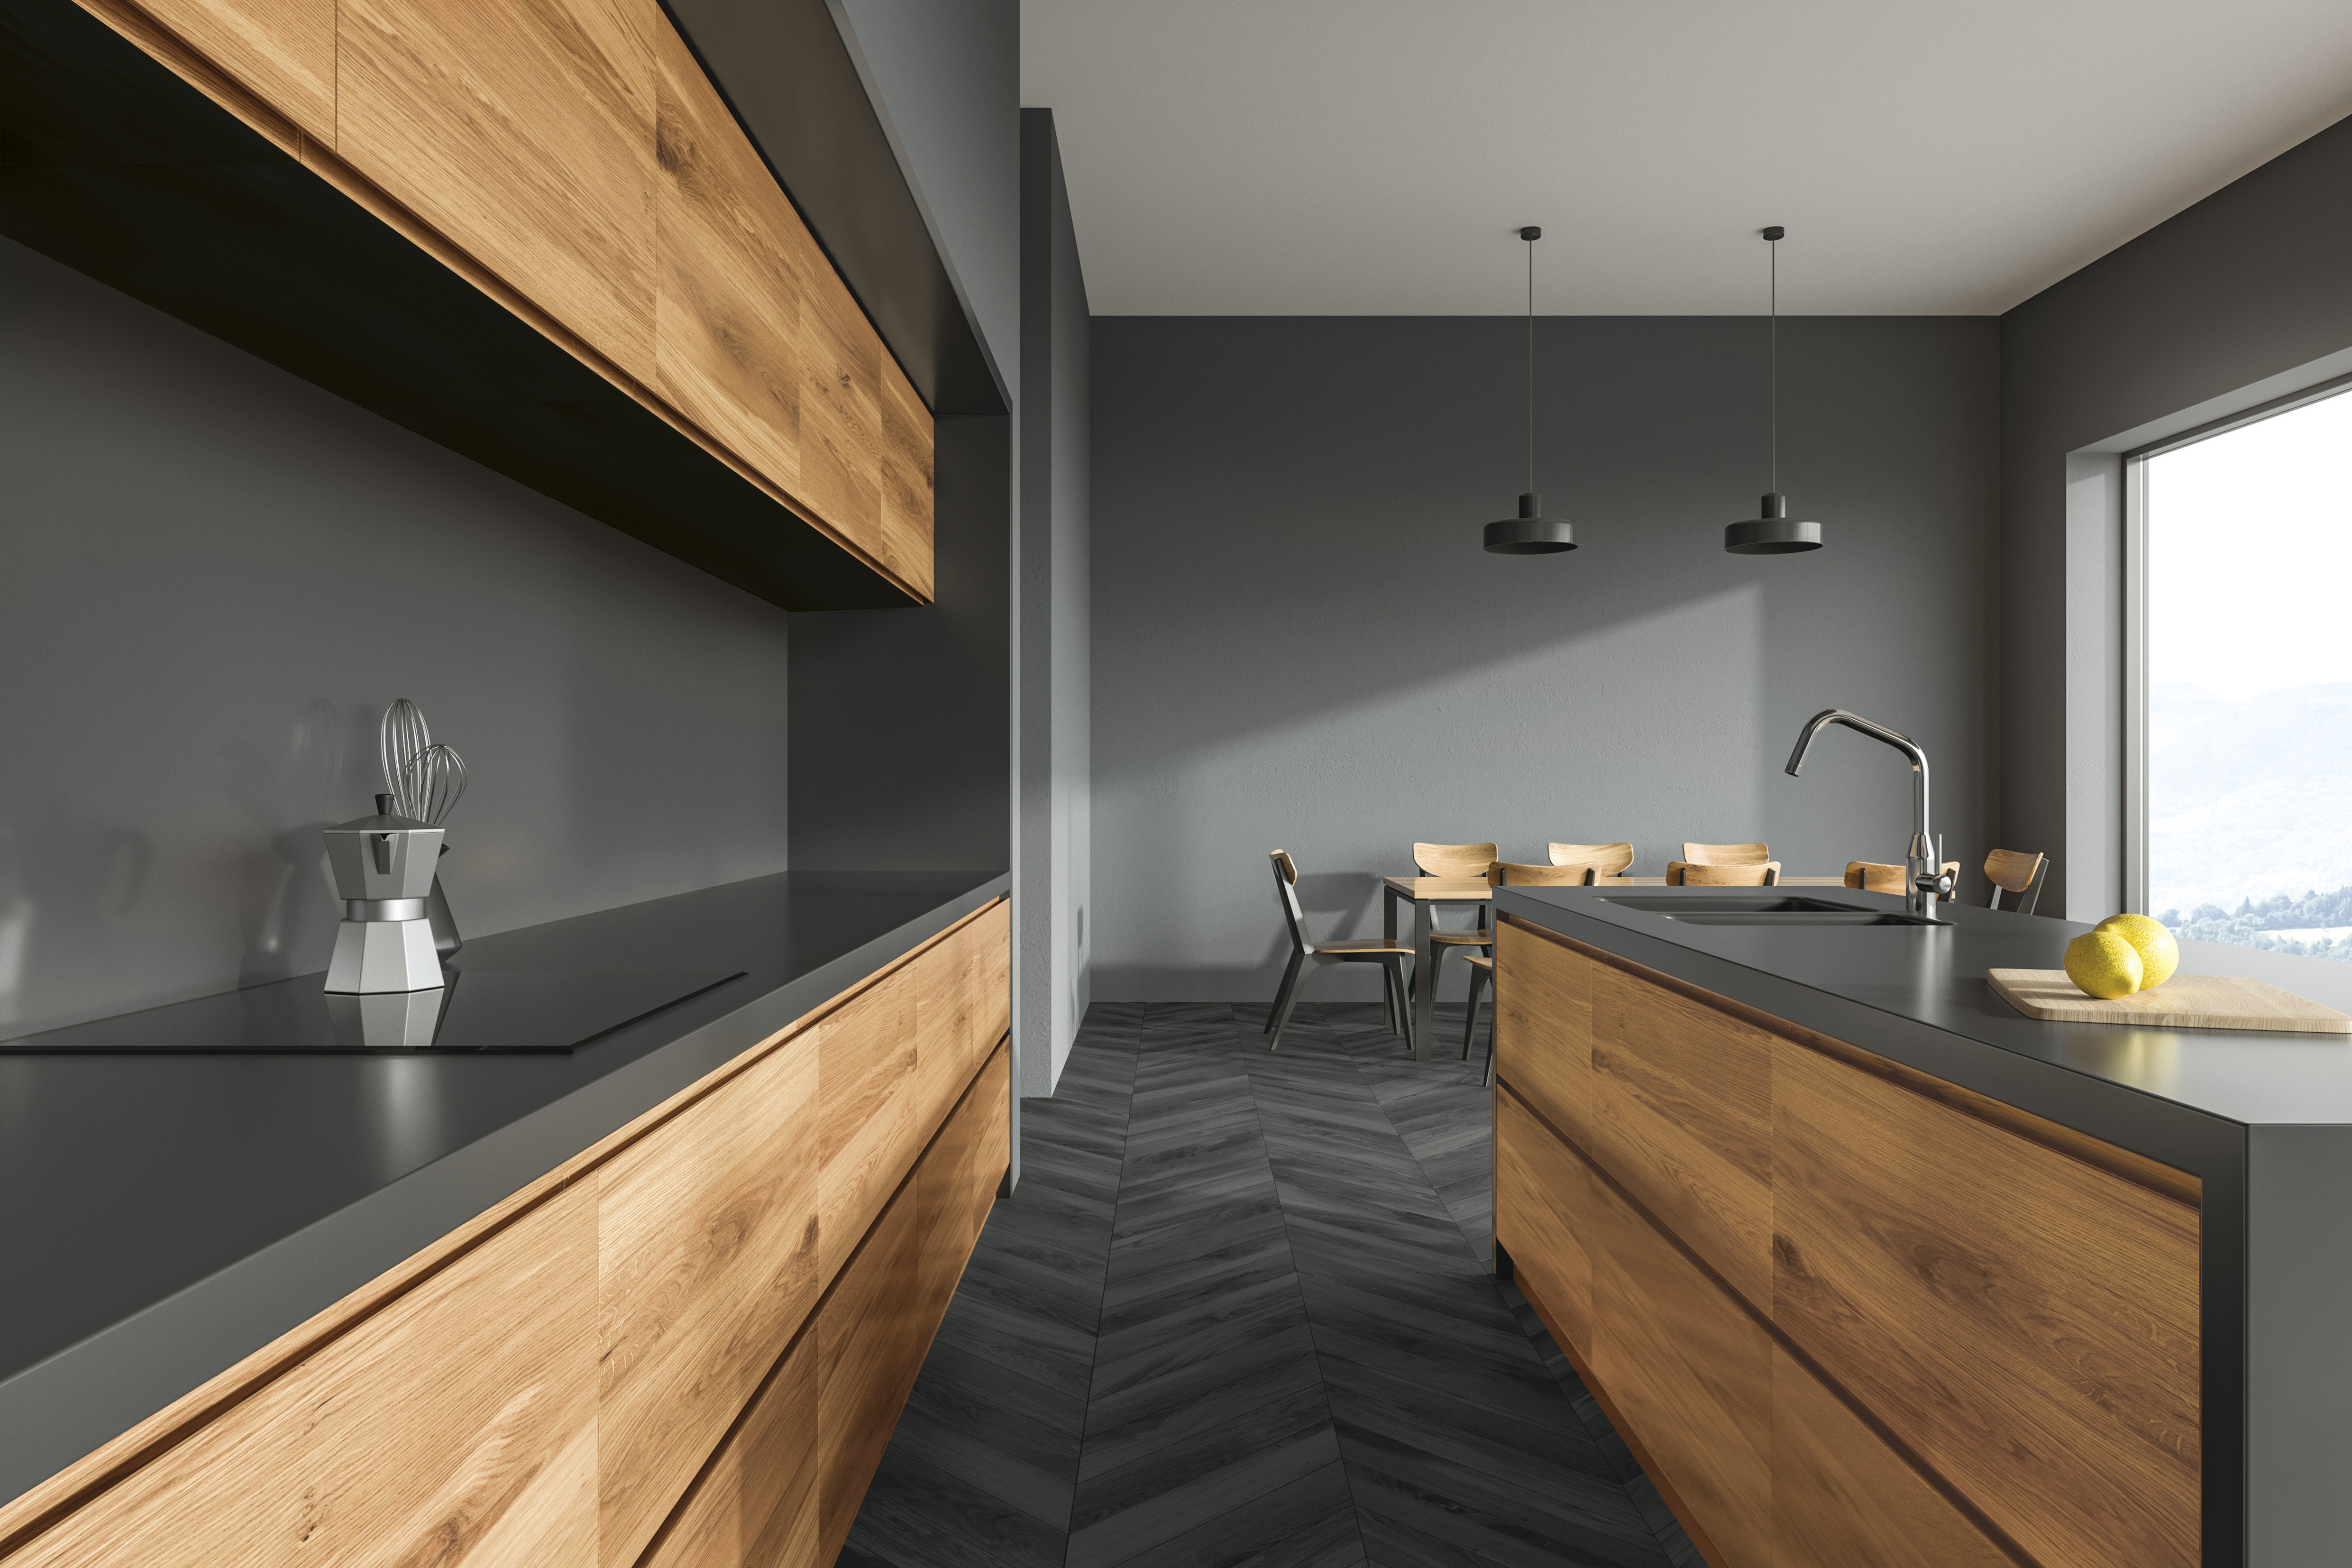 Wooden floor kitchen interior with wooden and gray countertops and a long table standing in the background. Close up 3d rendering mock up